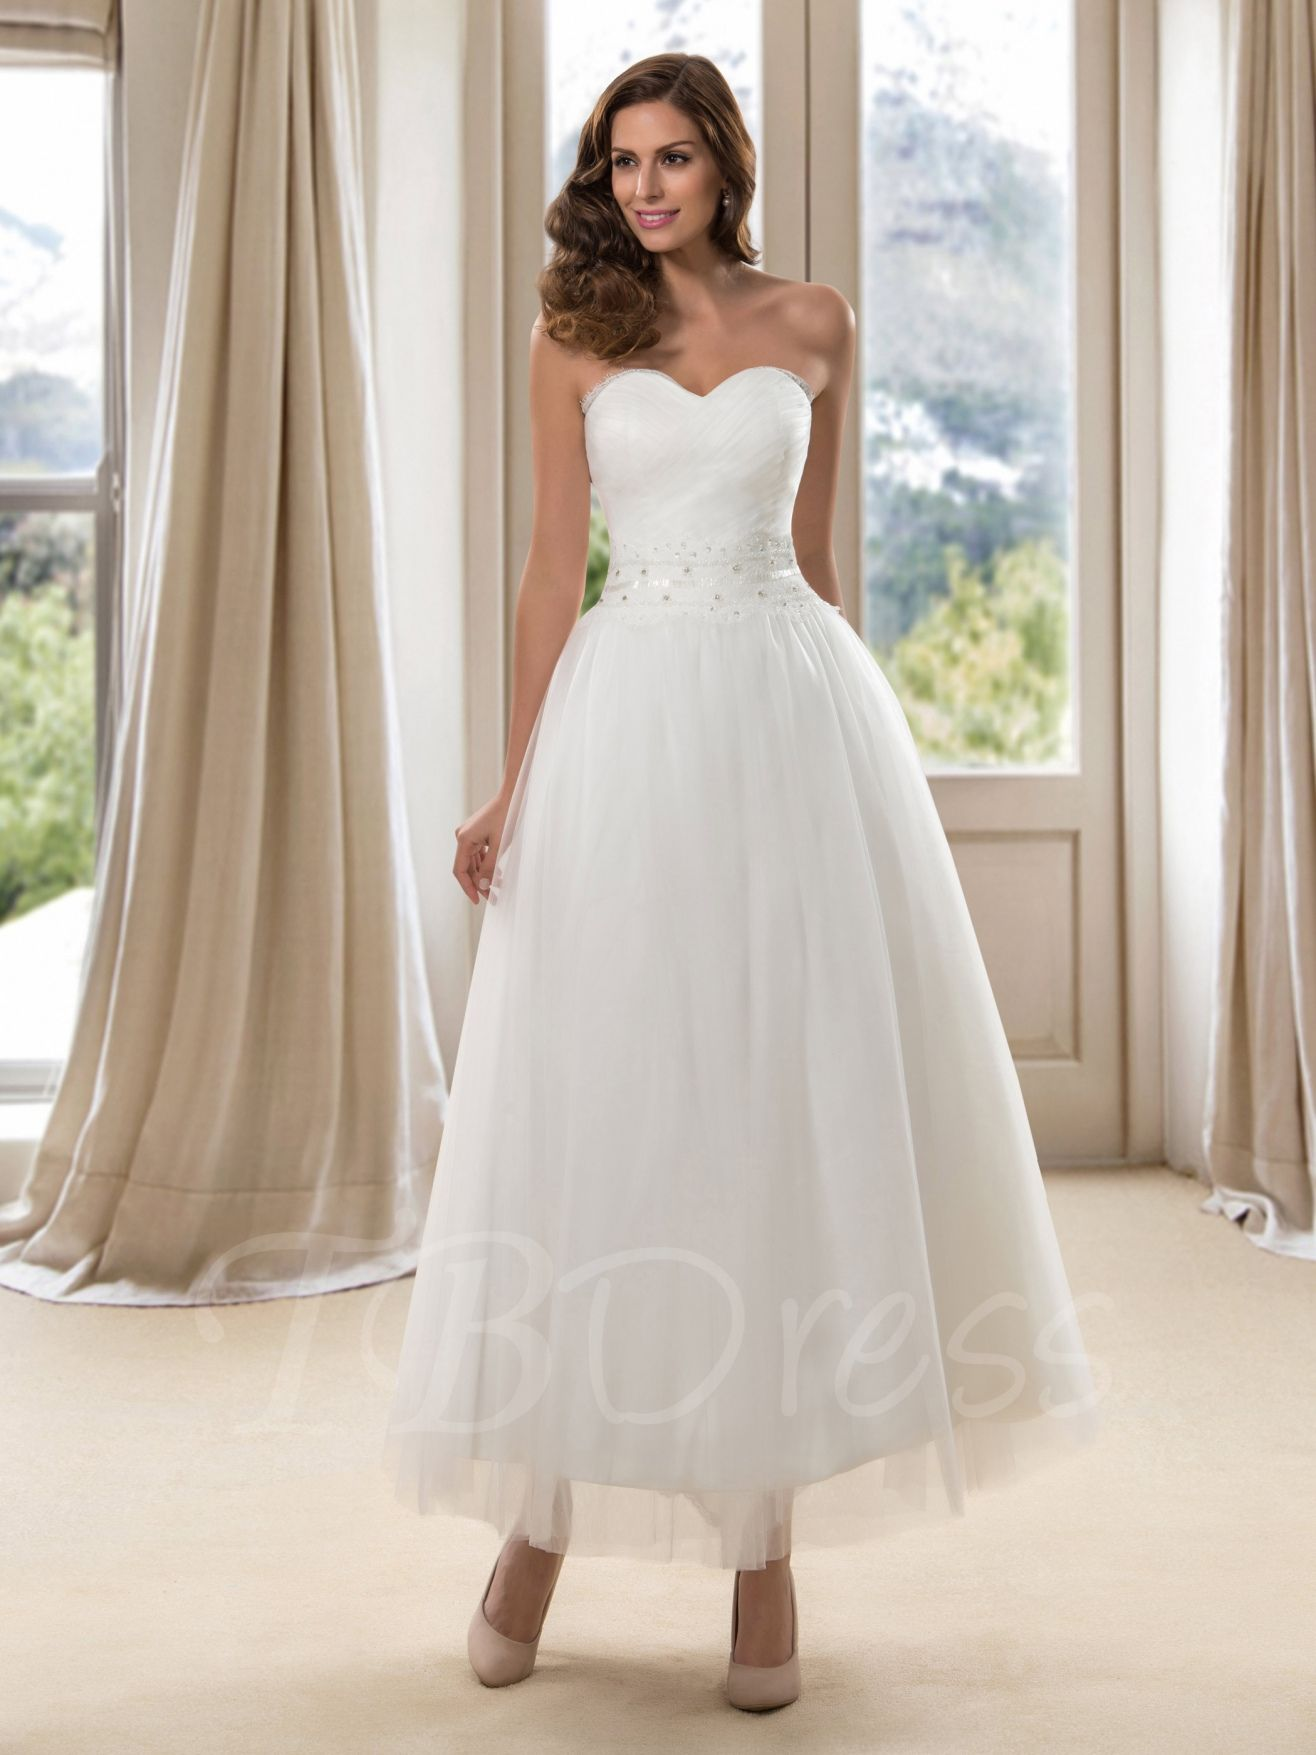 Country dresses for weddings   Ankle Length Wedding Dress  Country Dresses for Weddings Check